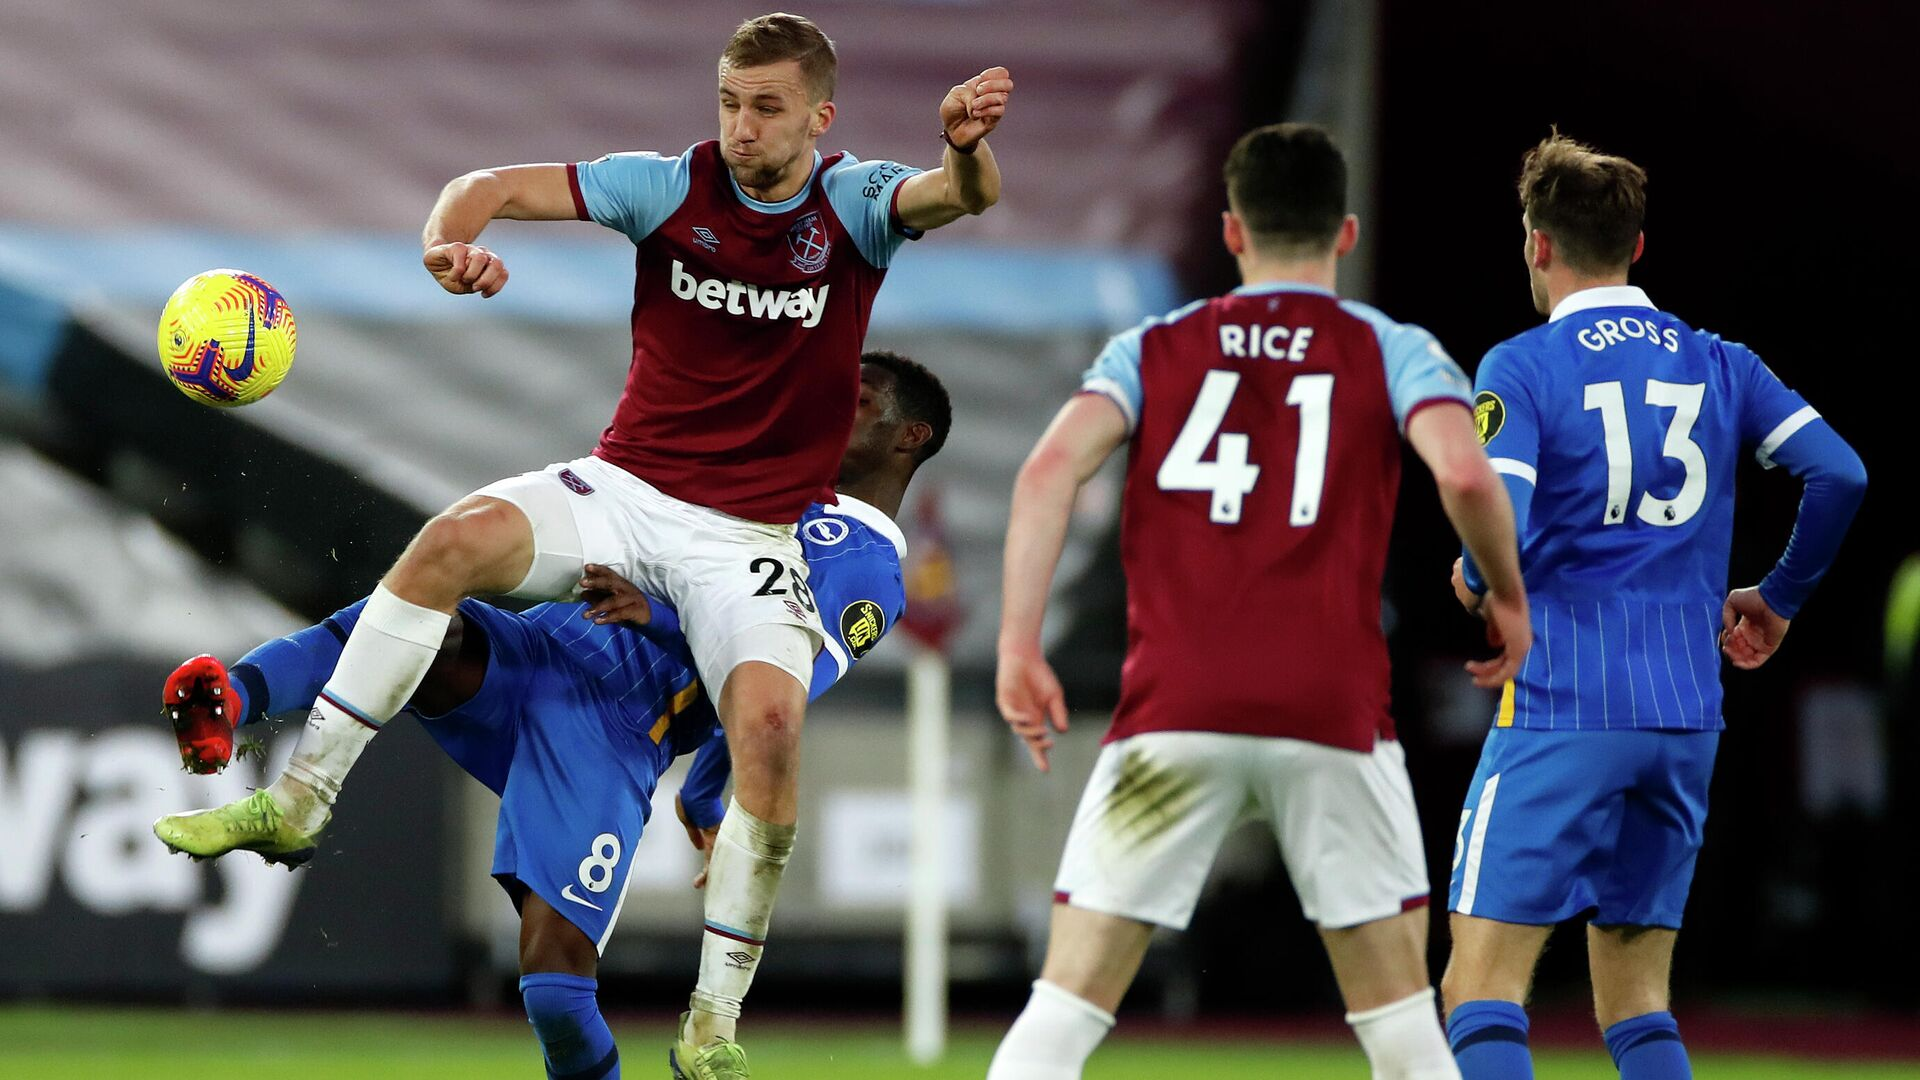 West Ham United's Czech midfielder Tomas Soucek (L) vies with Brighton's Ivorian midfielder Yves Bissouma (2nd L) during the English Premier League football match between West Ham United and Brighton and Hove Albion at The London Stadium, in east London on December 27, 2020. - The game finished 2-2. (Photo by PAUL CHILDS / POOL / AFP) / RESTRICTED TO EDITORIAL USE. No use with unauthorized audio, video, data, fixture lists, club/league logos or 'live' services. Online in-match use limited to 120 images. An additional 40 images may be used in extra time. No video emulation. Social media in-match use limited to 120 images. An additional 40 images may be used in extra time. No use in betting publications, games or single club/league/player publications. /  - РИА Новости, 1920, 27.12.2020